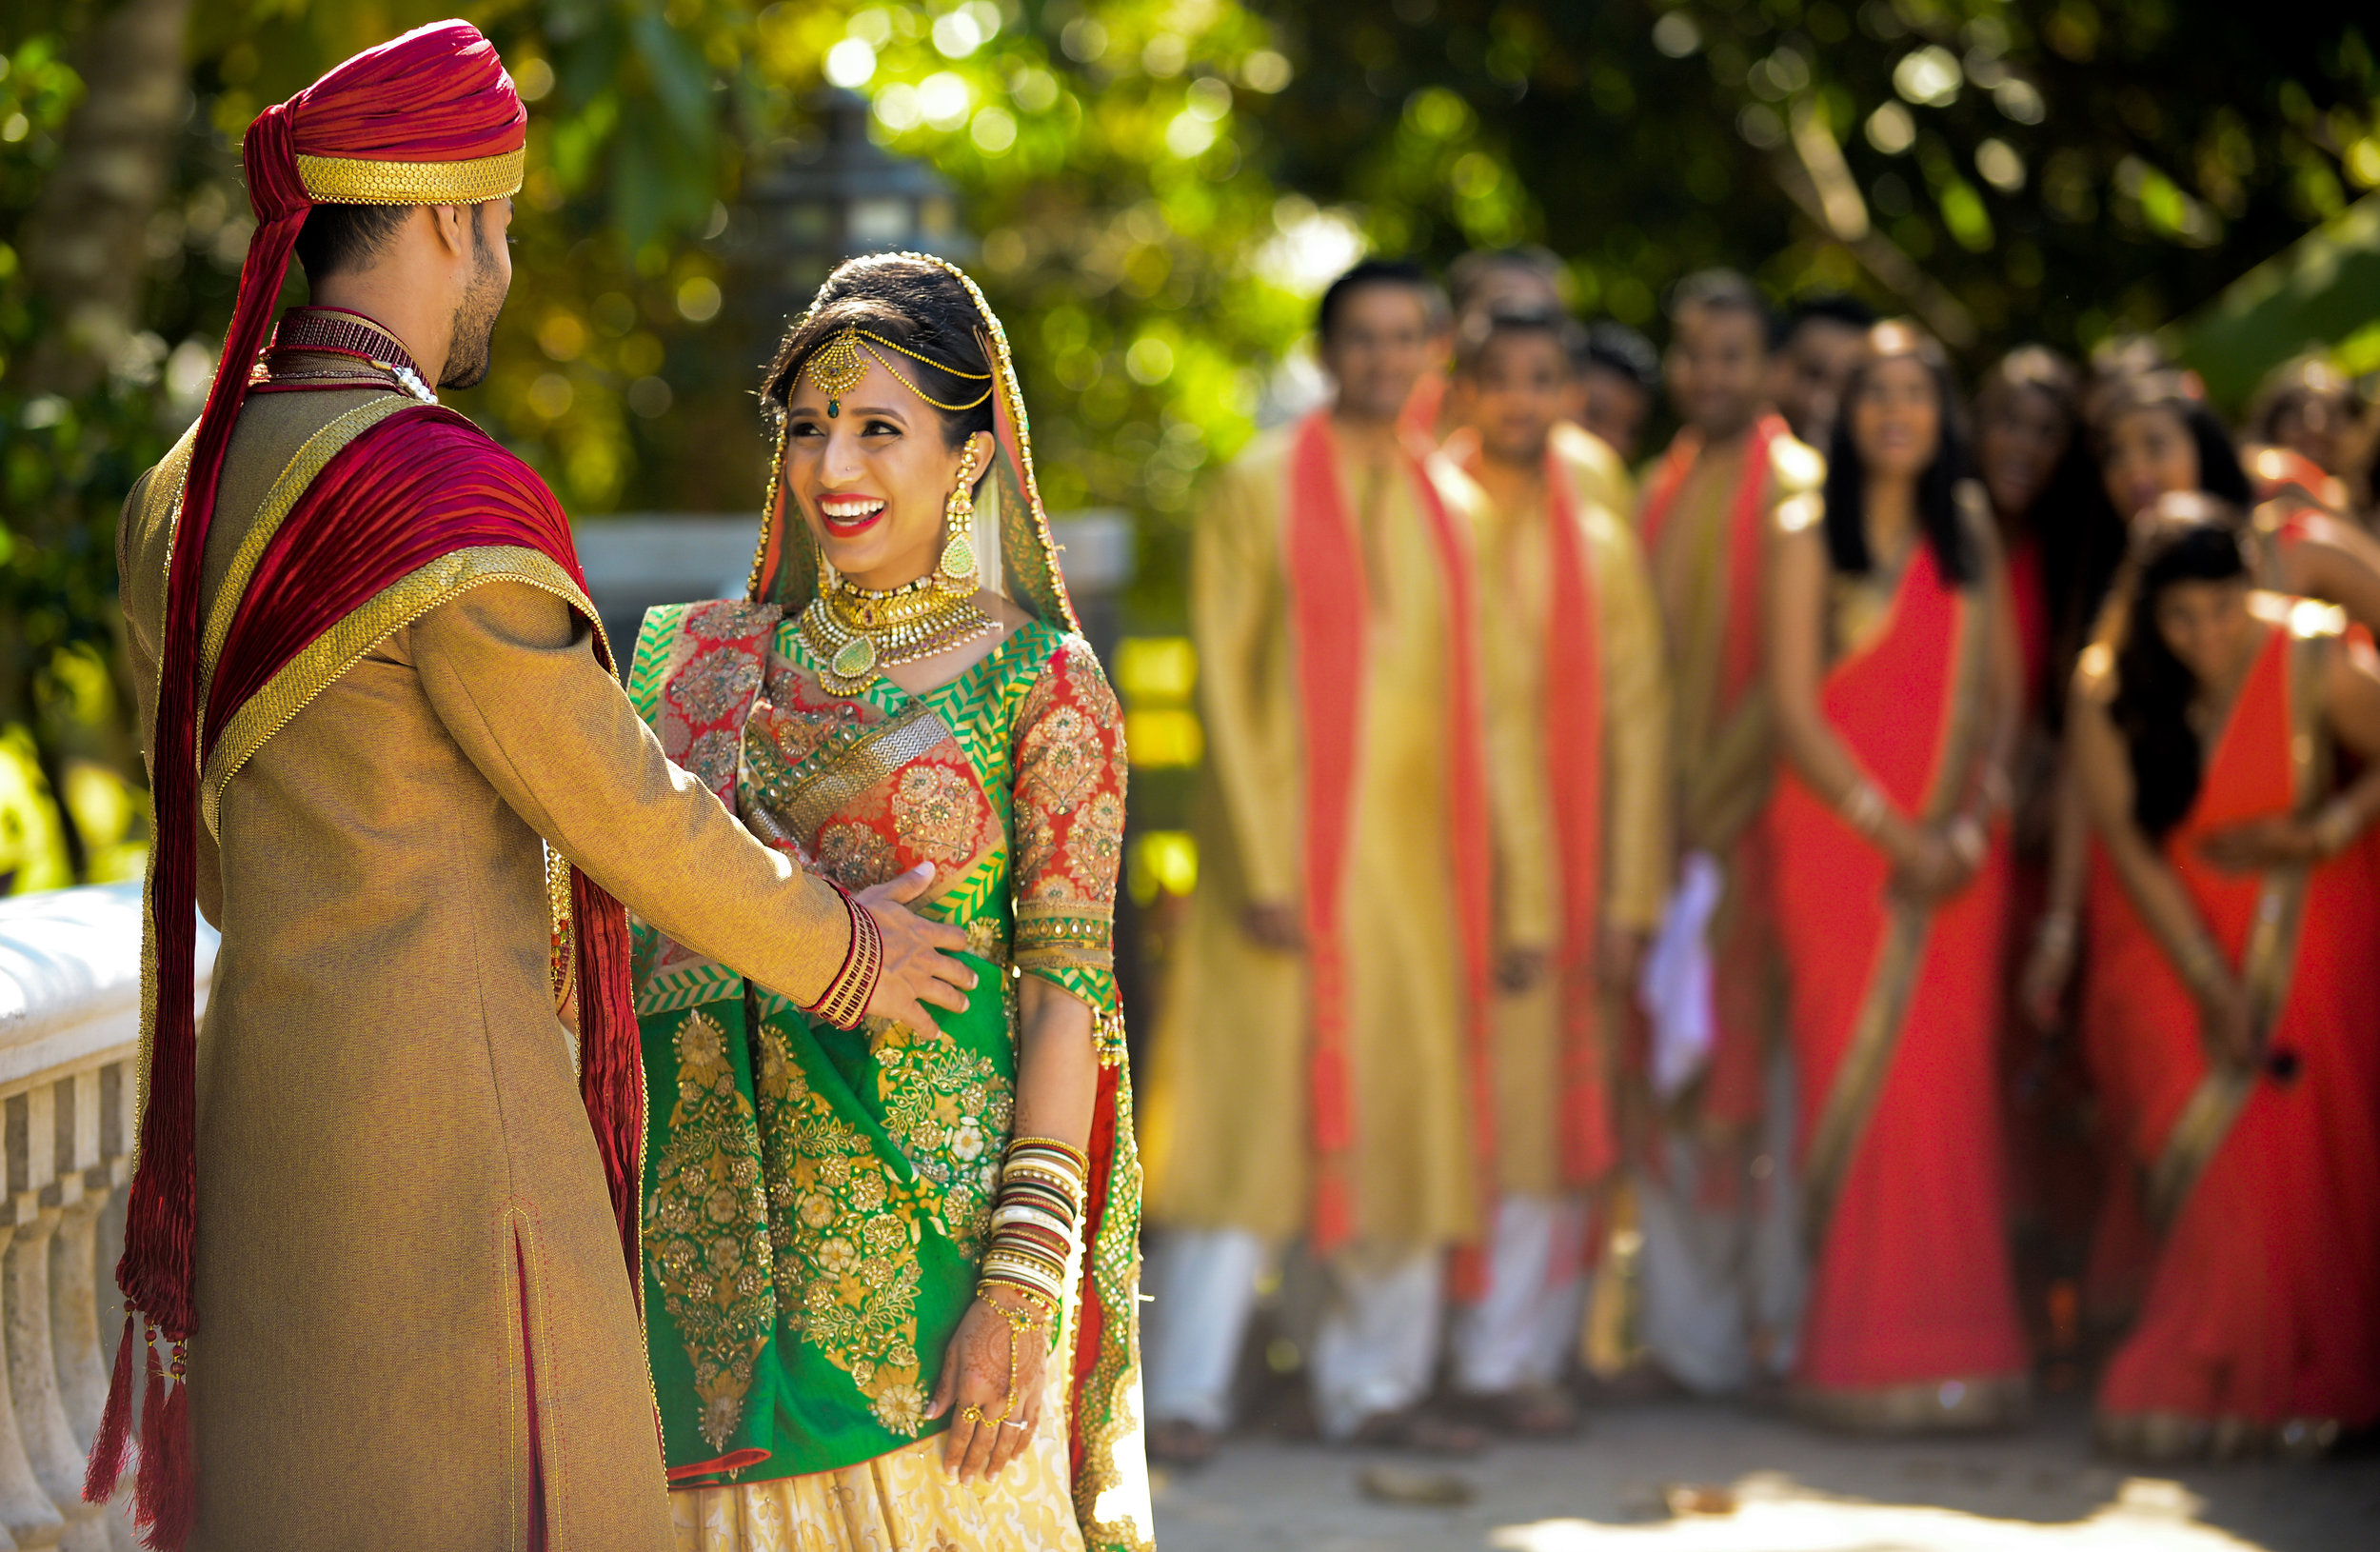 costa-rica-weddings-roshni-jignesh-23.jpg